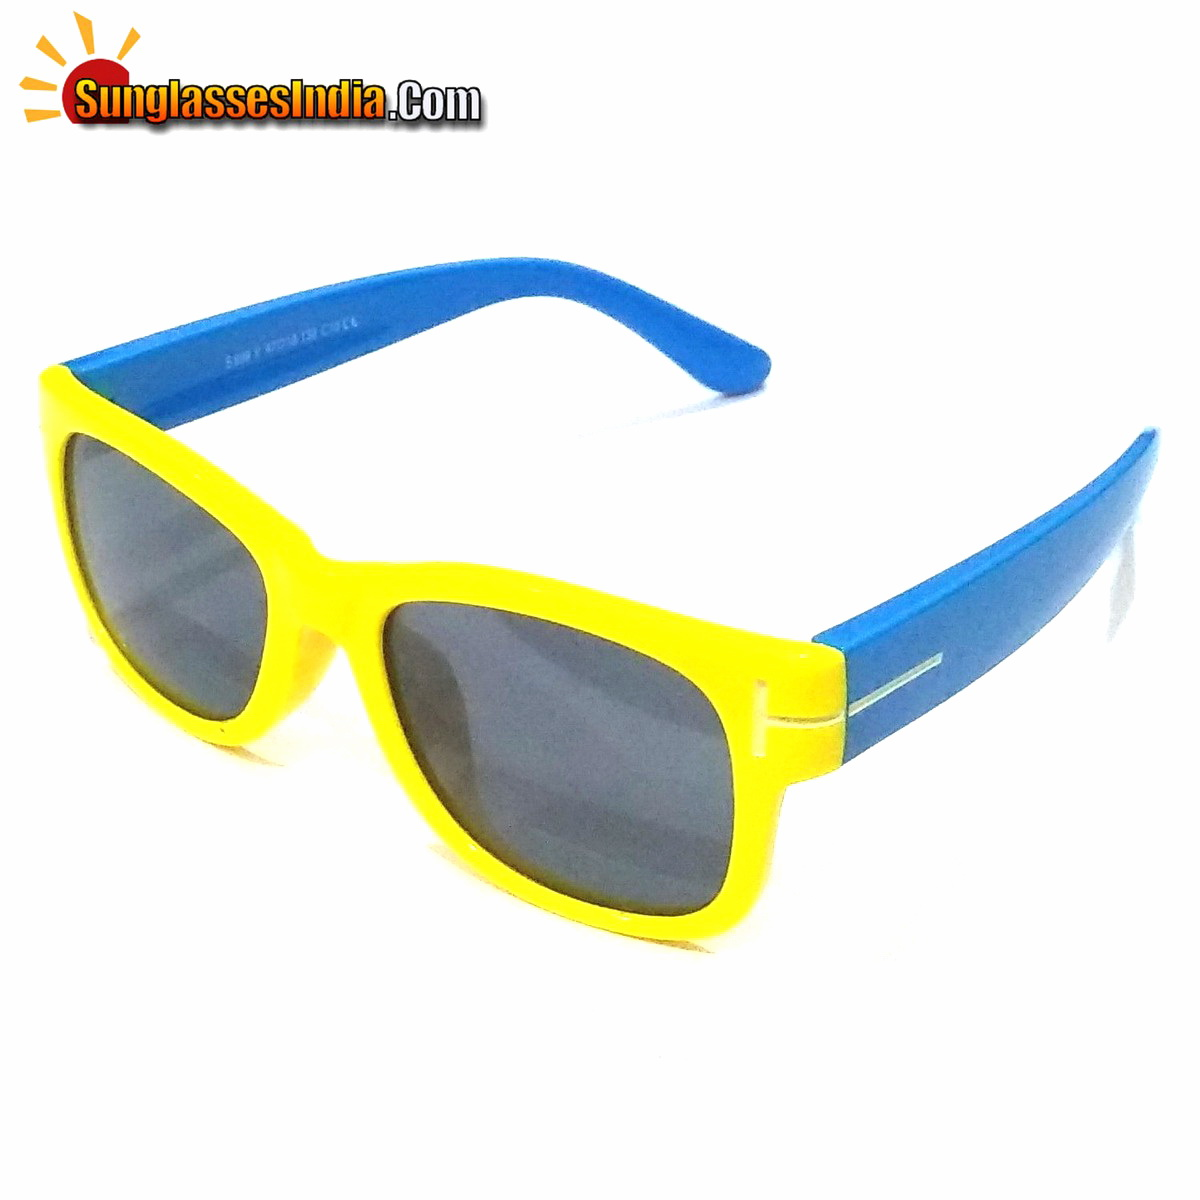 Unbreakable Kids Polarized Sunglasses Light Weight TR Material S899YellowBlue